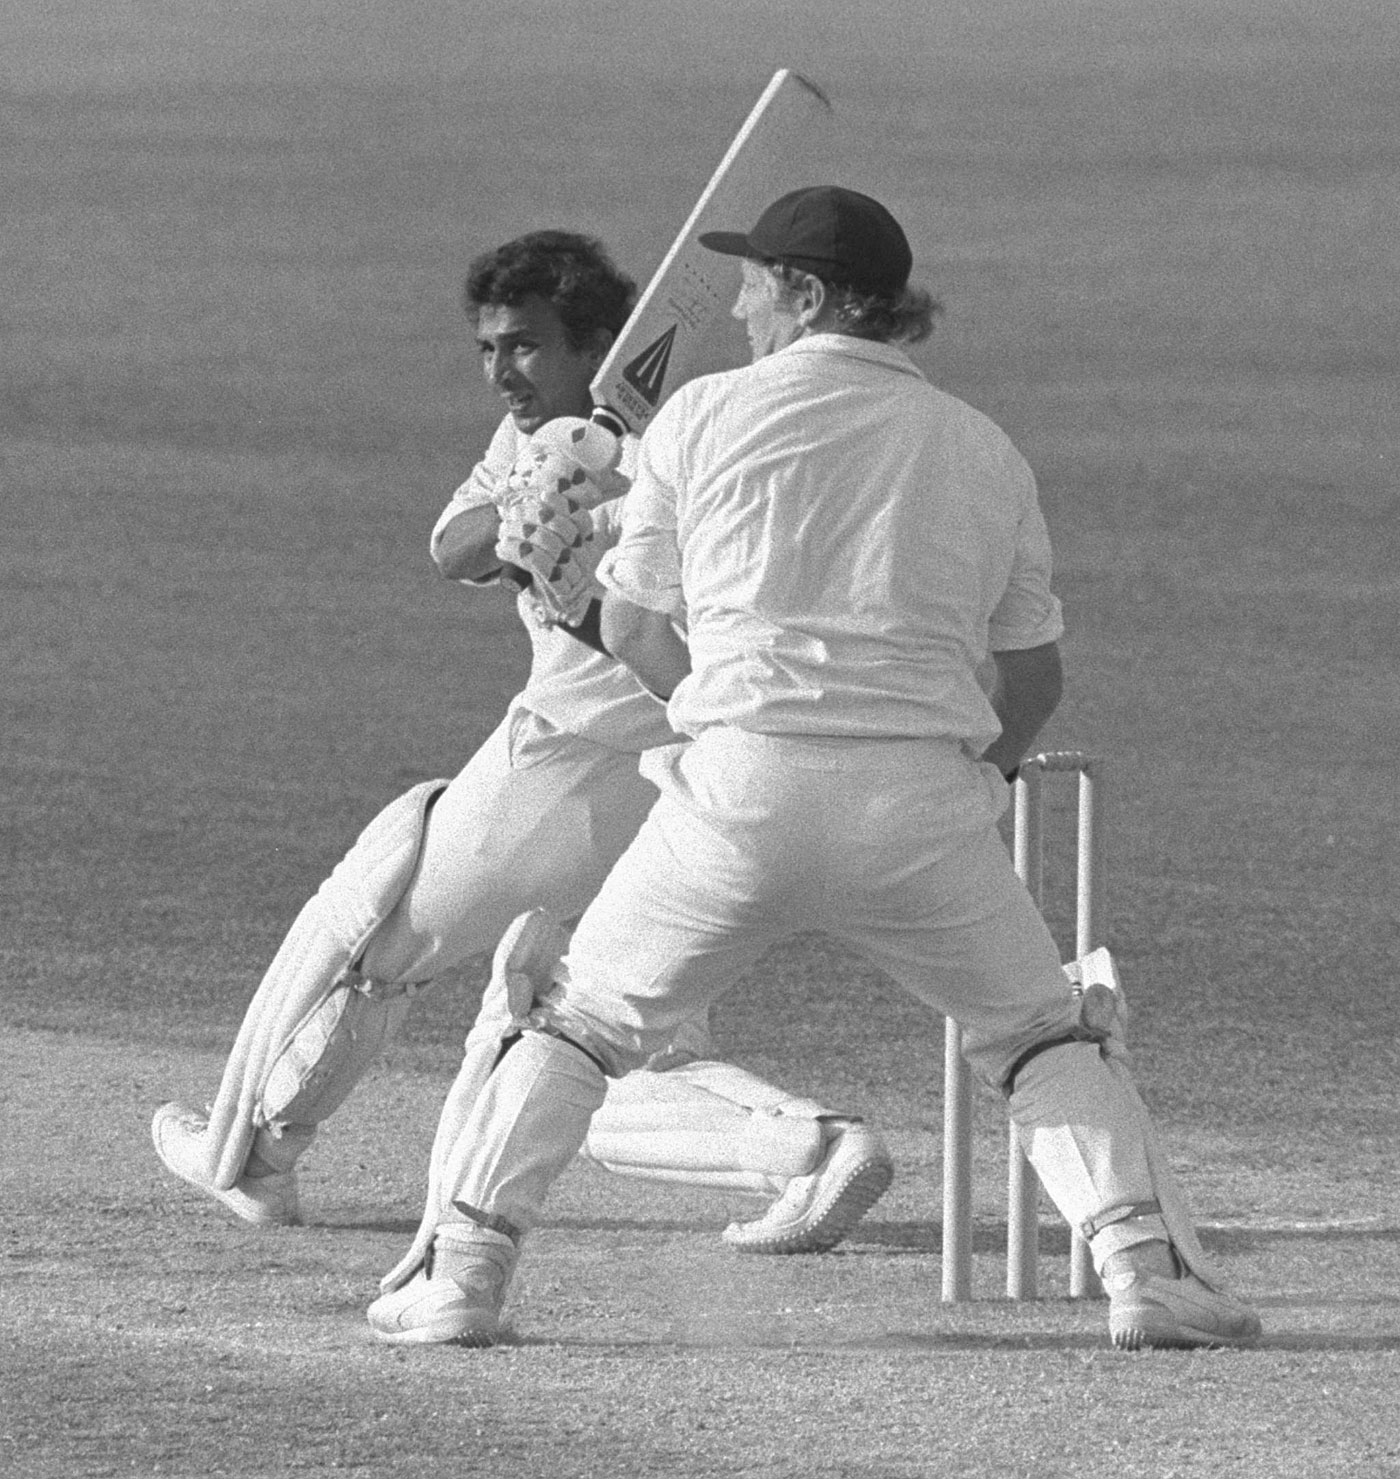 Sunil Gavaskar pulls one to the leg side during his double-century, England v India, 4th Test, The Oval, 4th day, 3 September, 1979